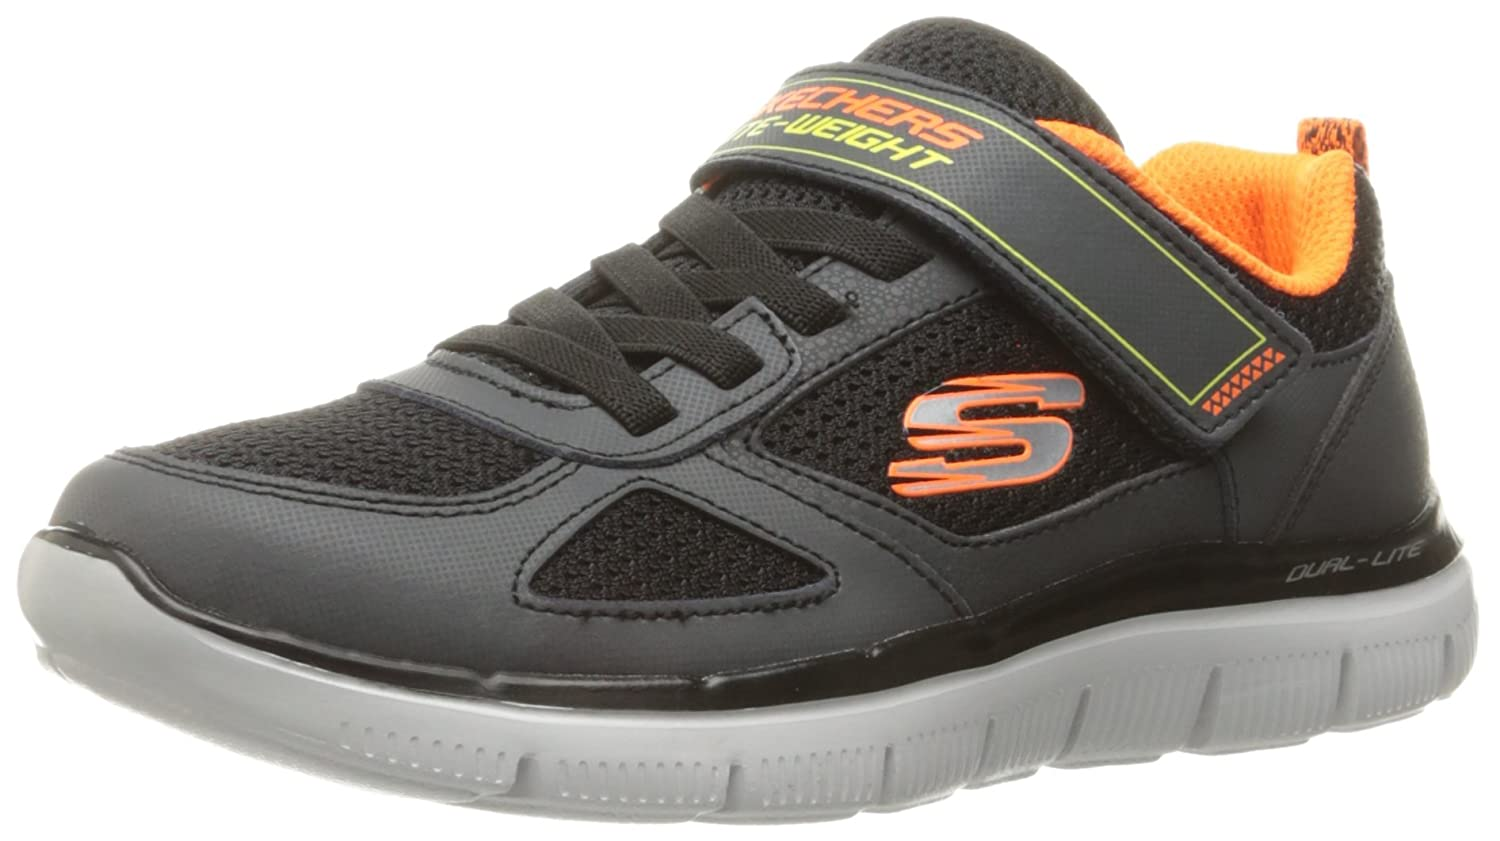 Skechers Kids Boys Flex Advantage 2.0 Strap Sneaker Flex Advantage 2.0 - K